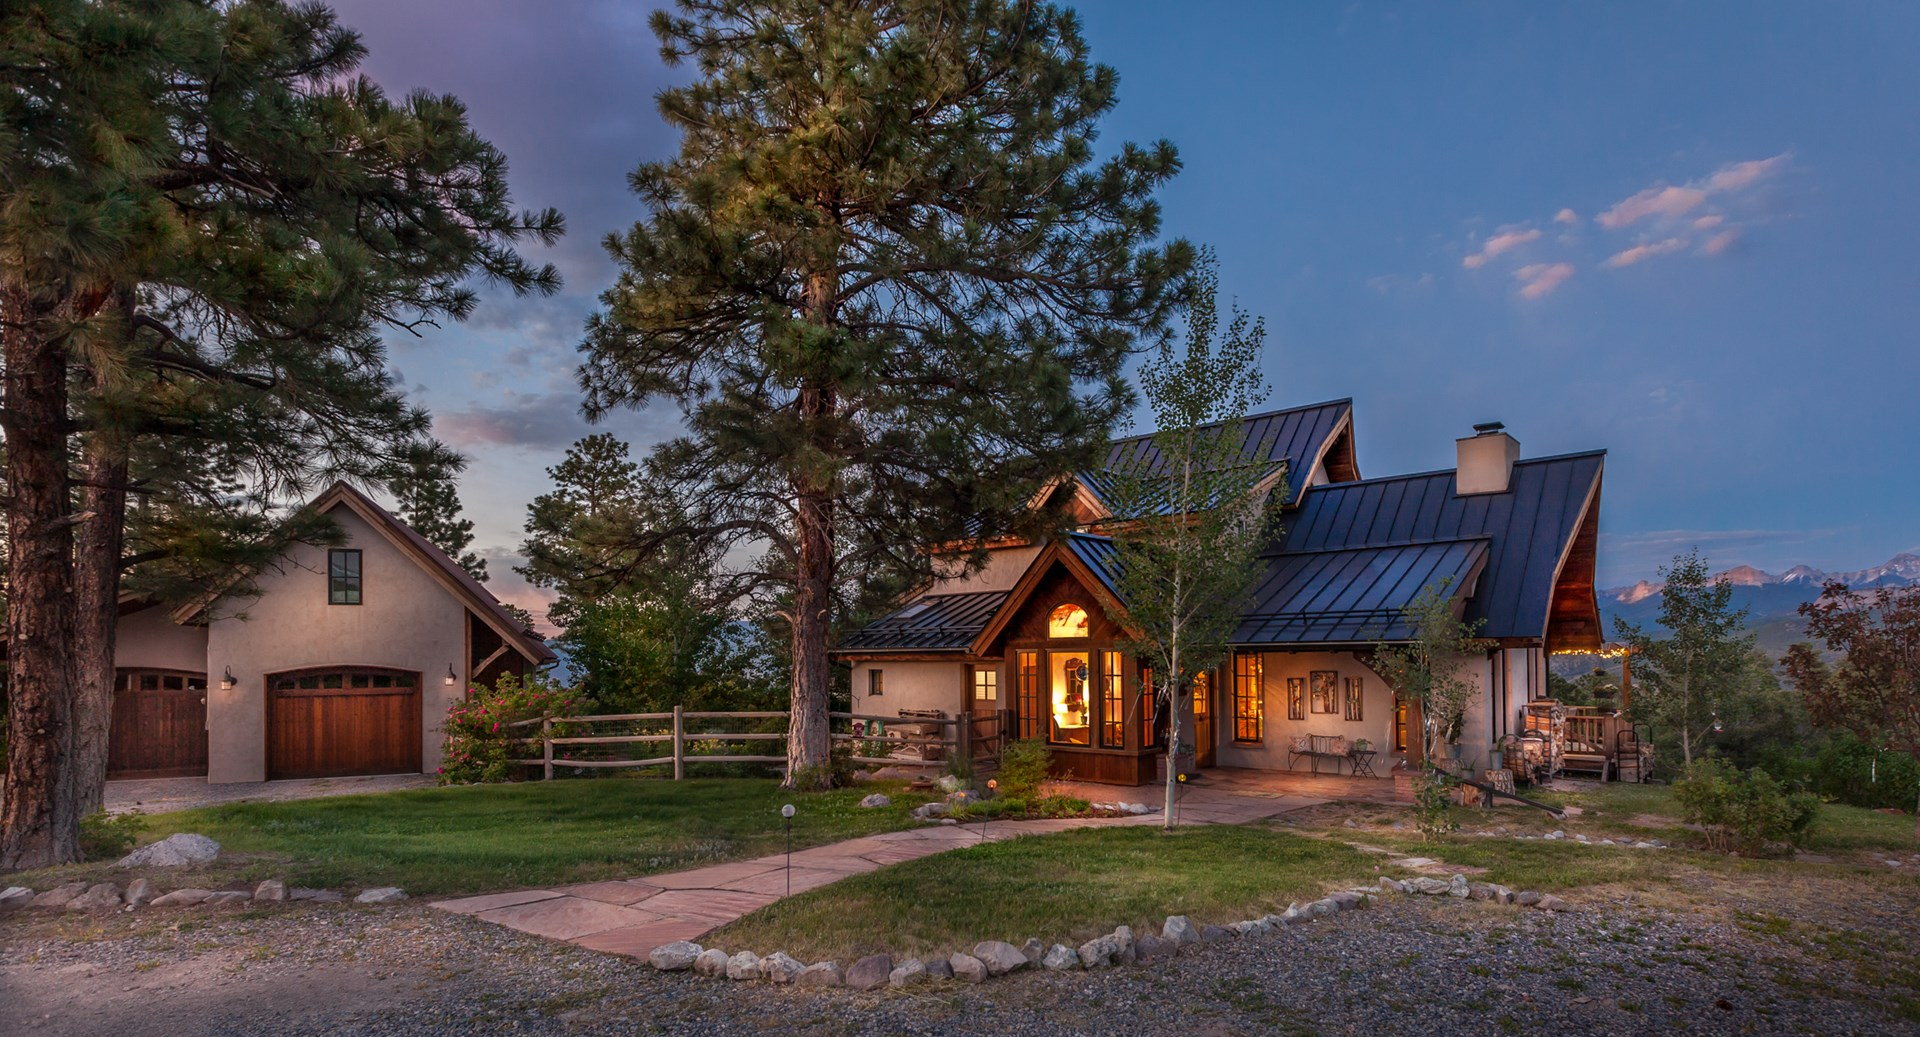 Mountain Recreation Residential Home For Sale Ridgway CO